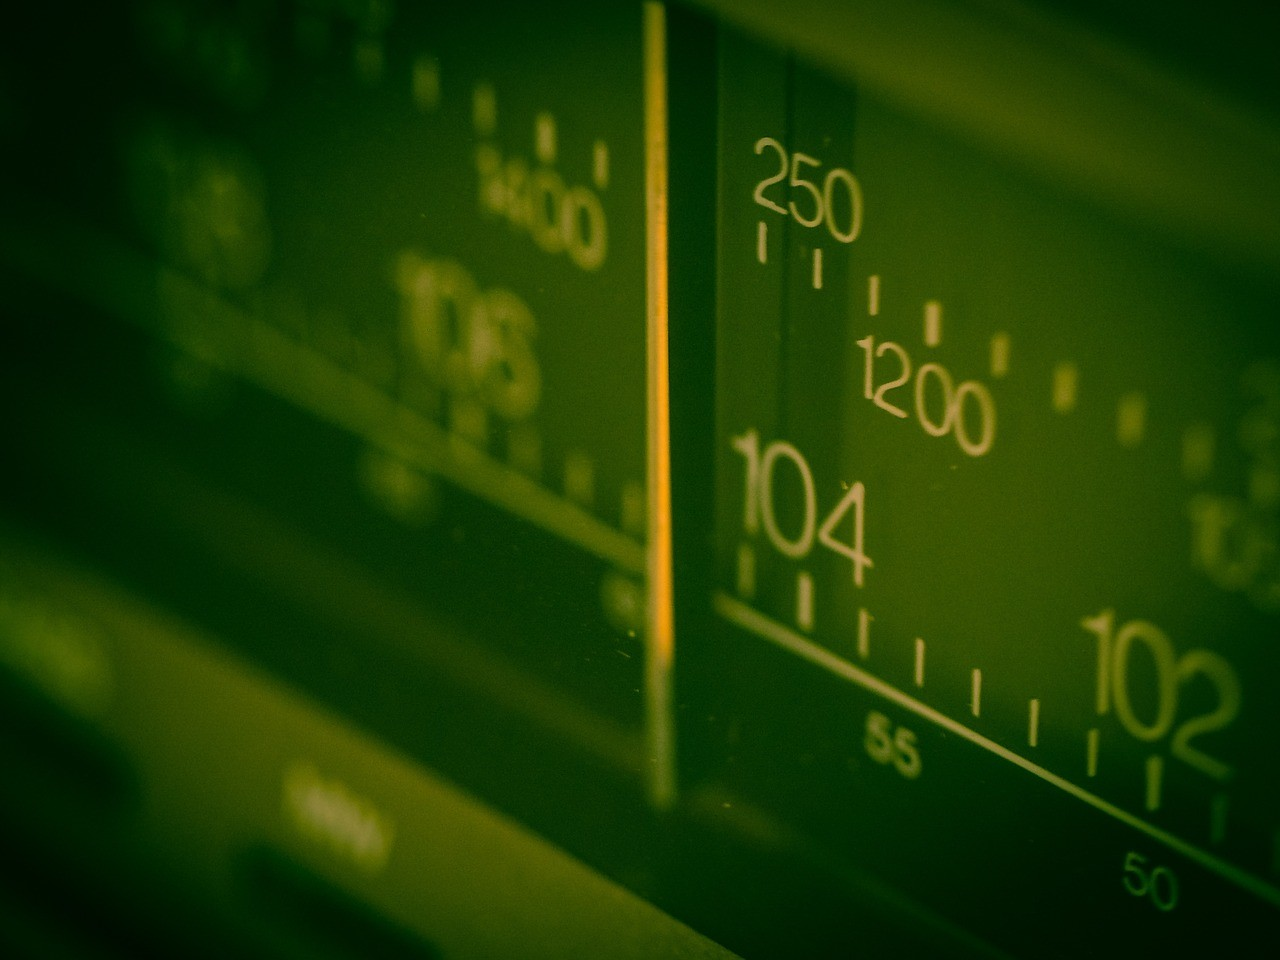 frequency, radio, scale